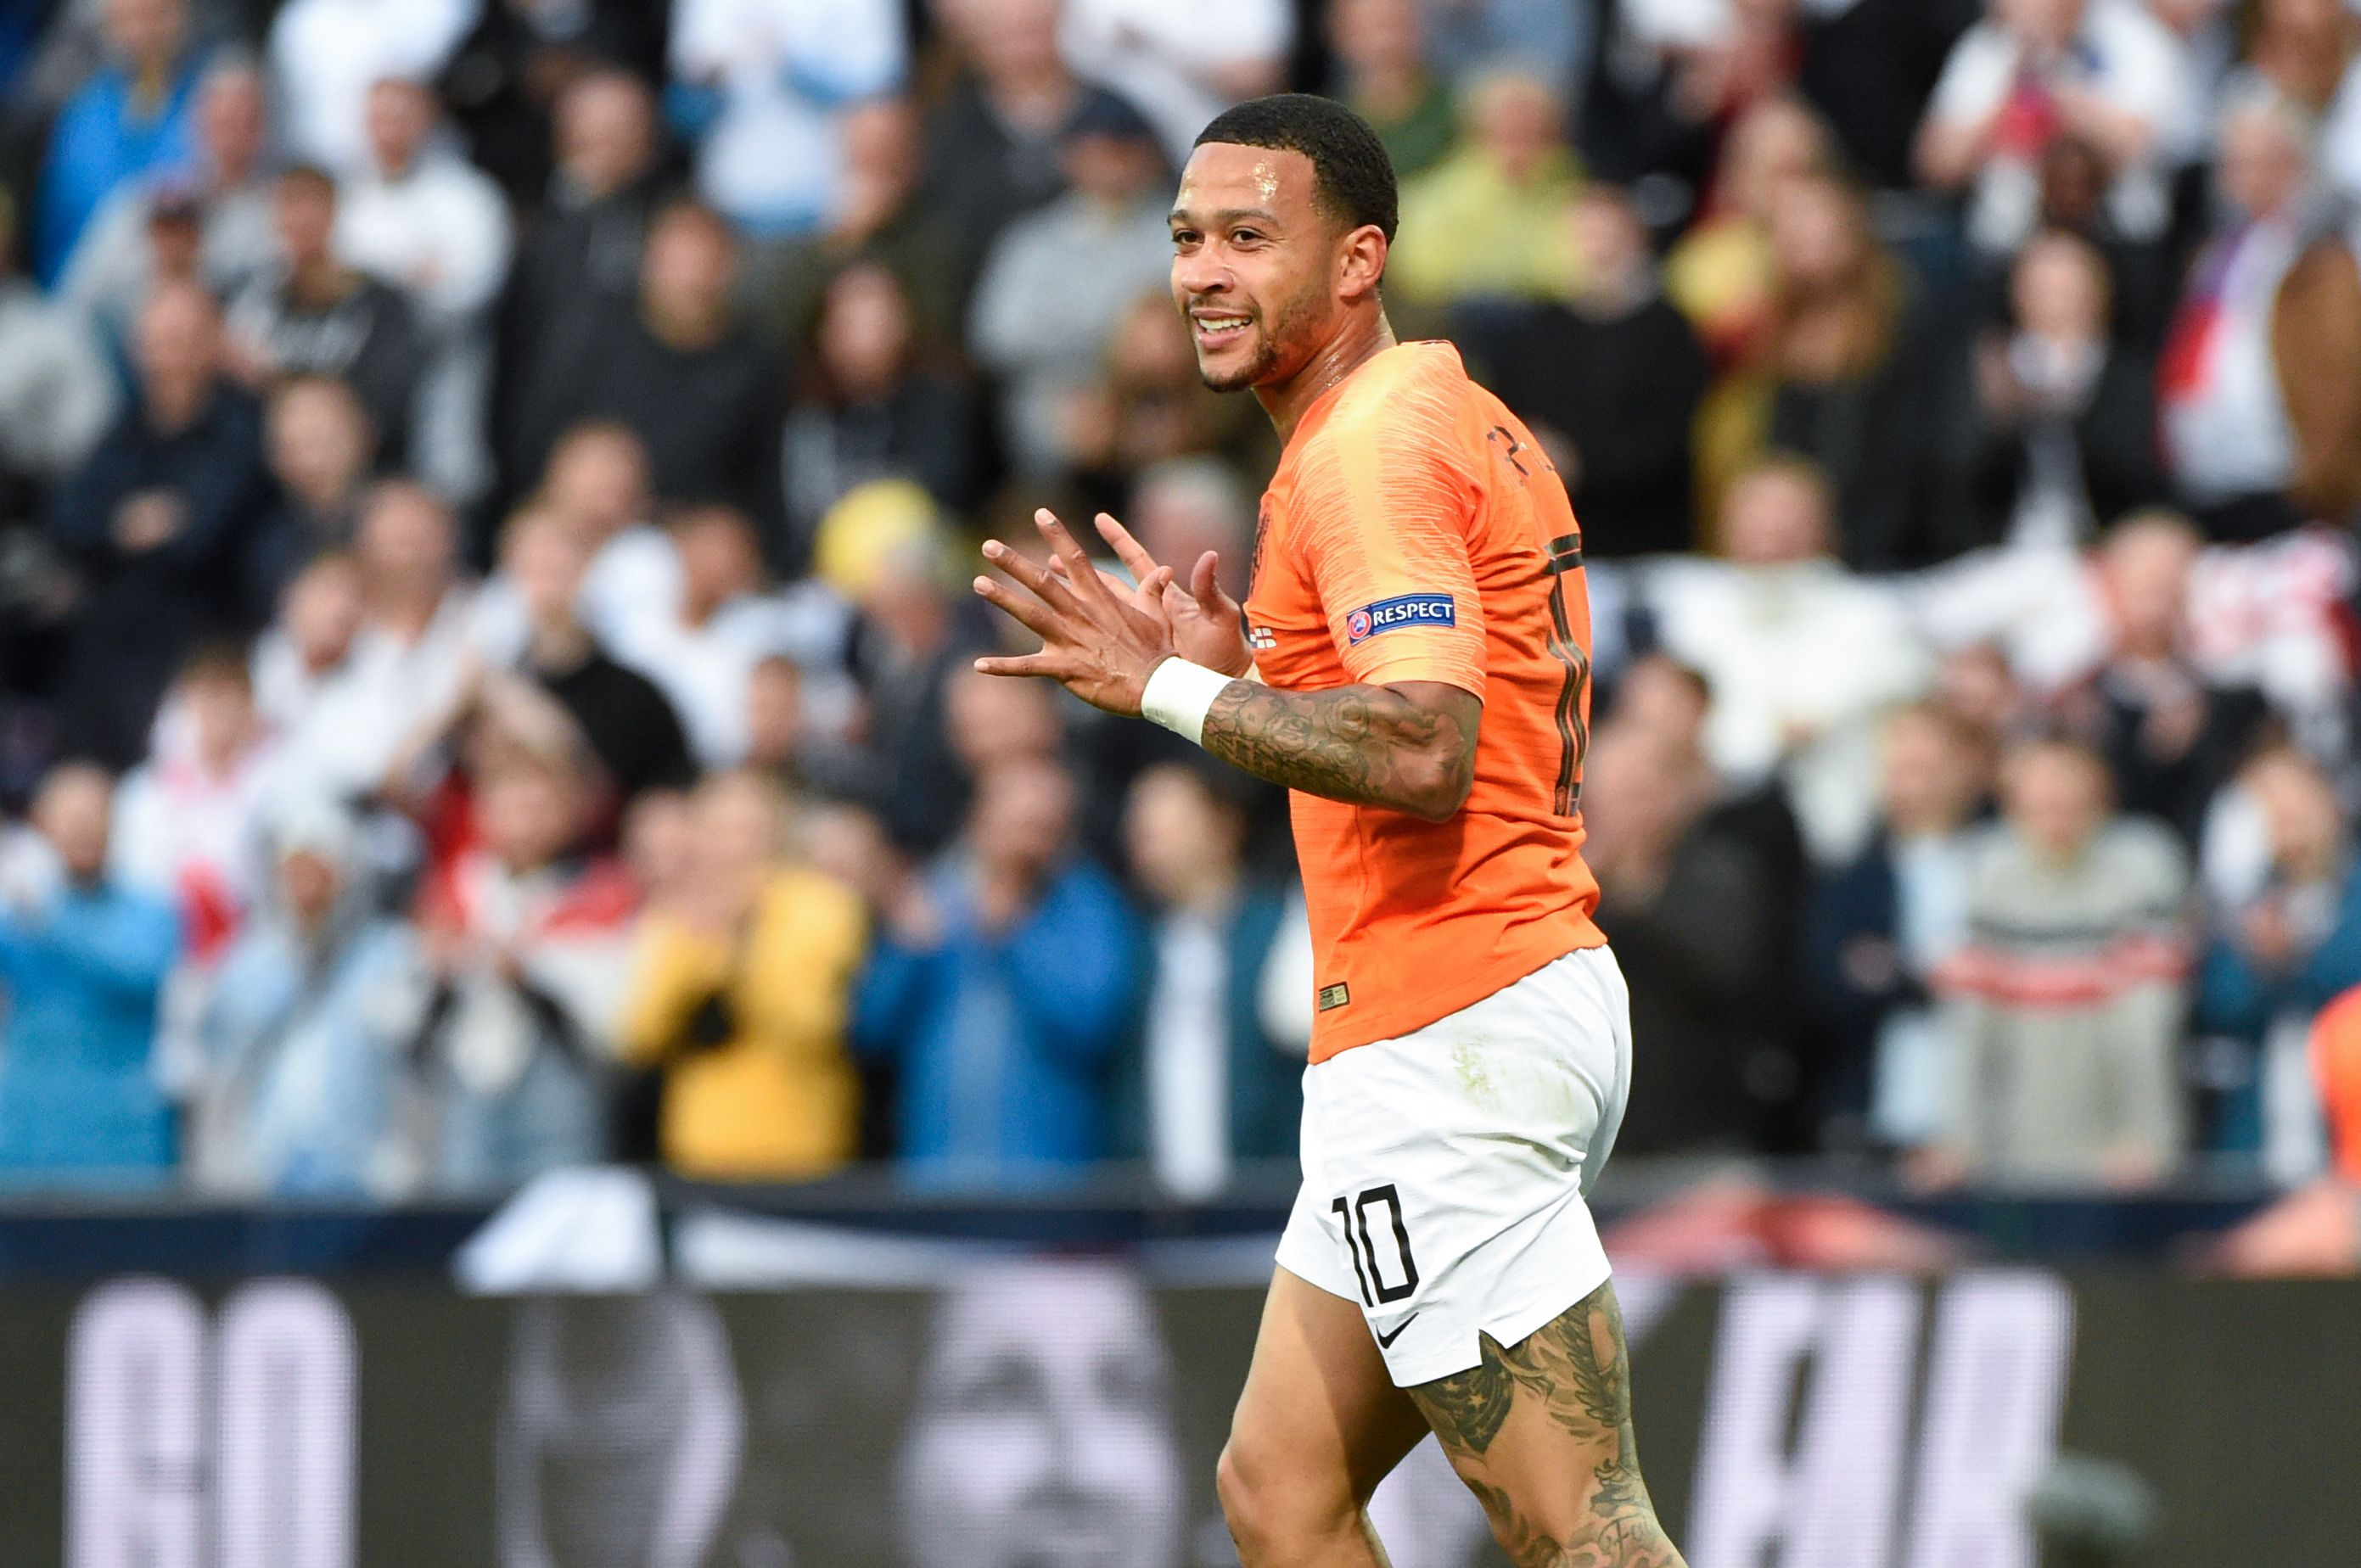 Football - Ligue des nations - Tops/Flops Pays-Bas - Angleterre : Depay décisif, Stones saborde les siens